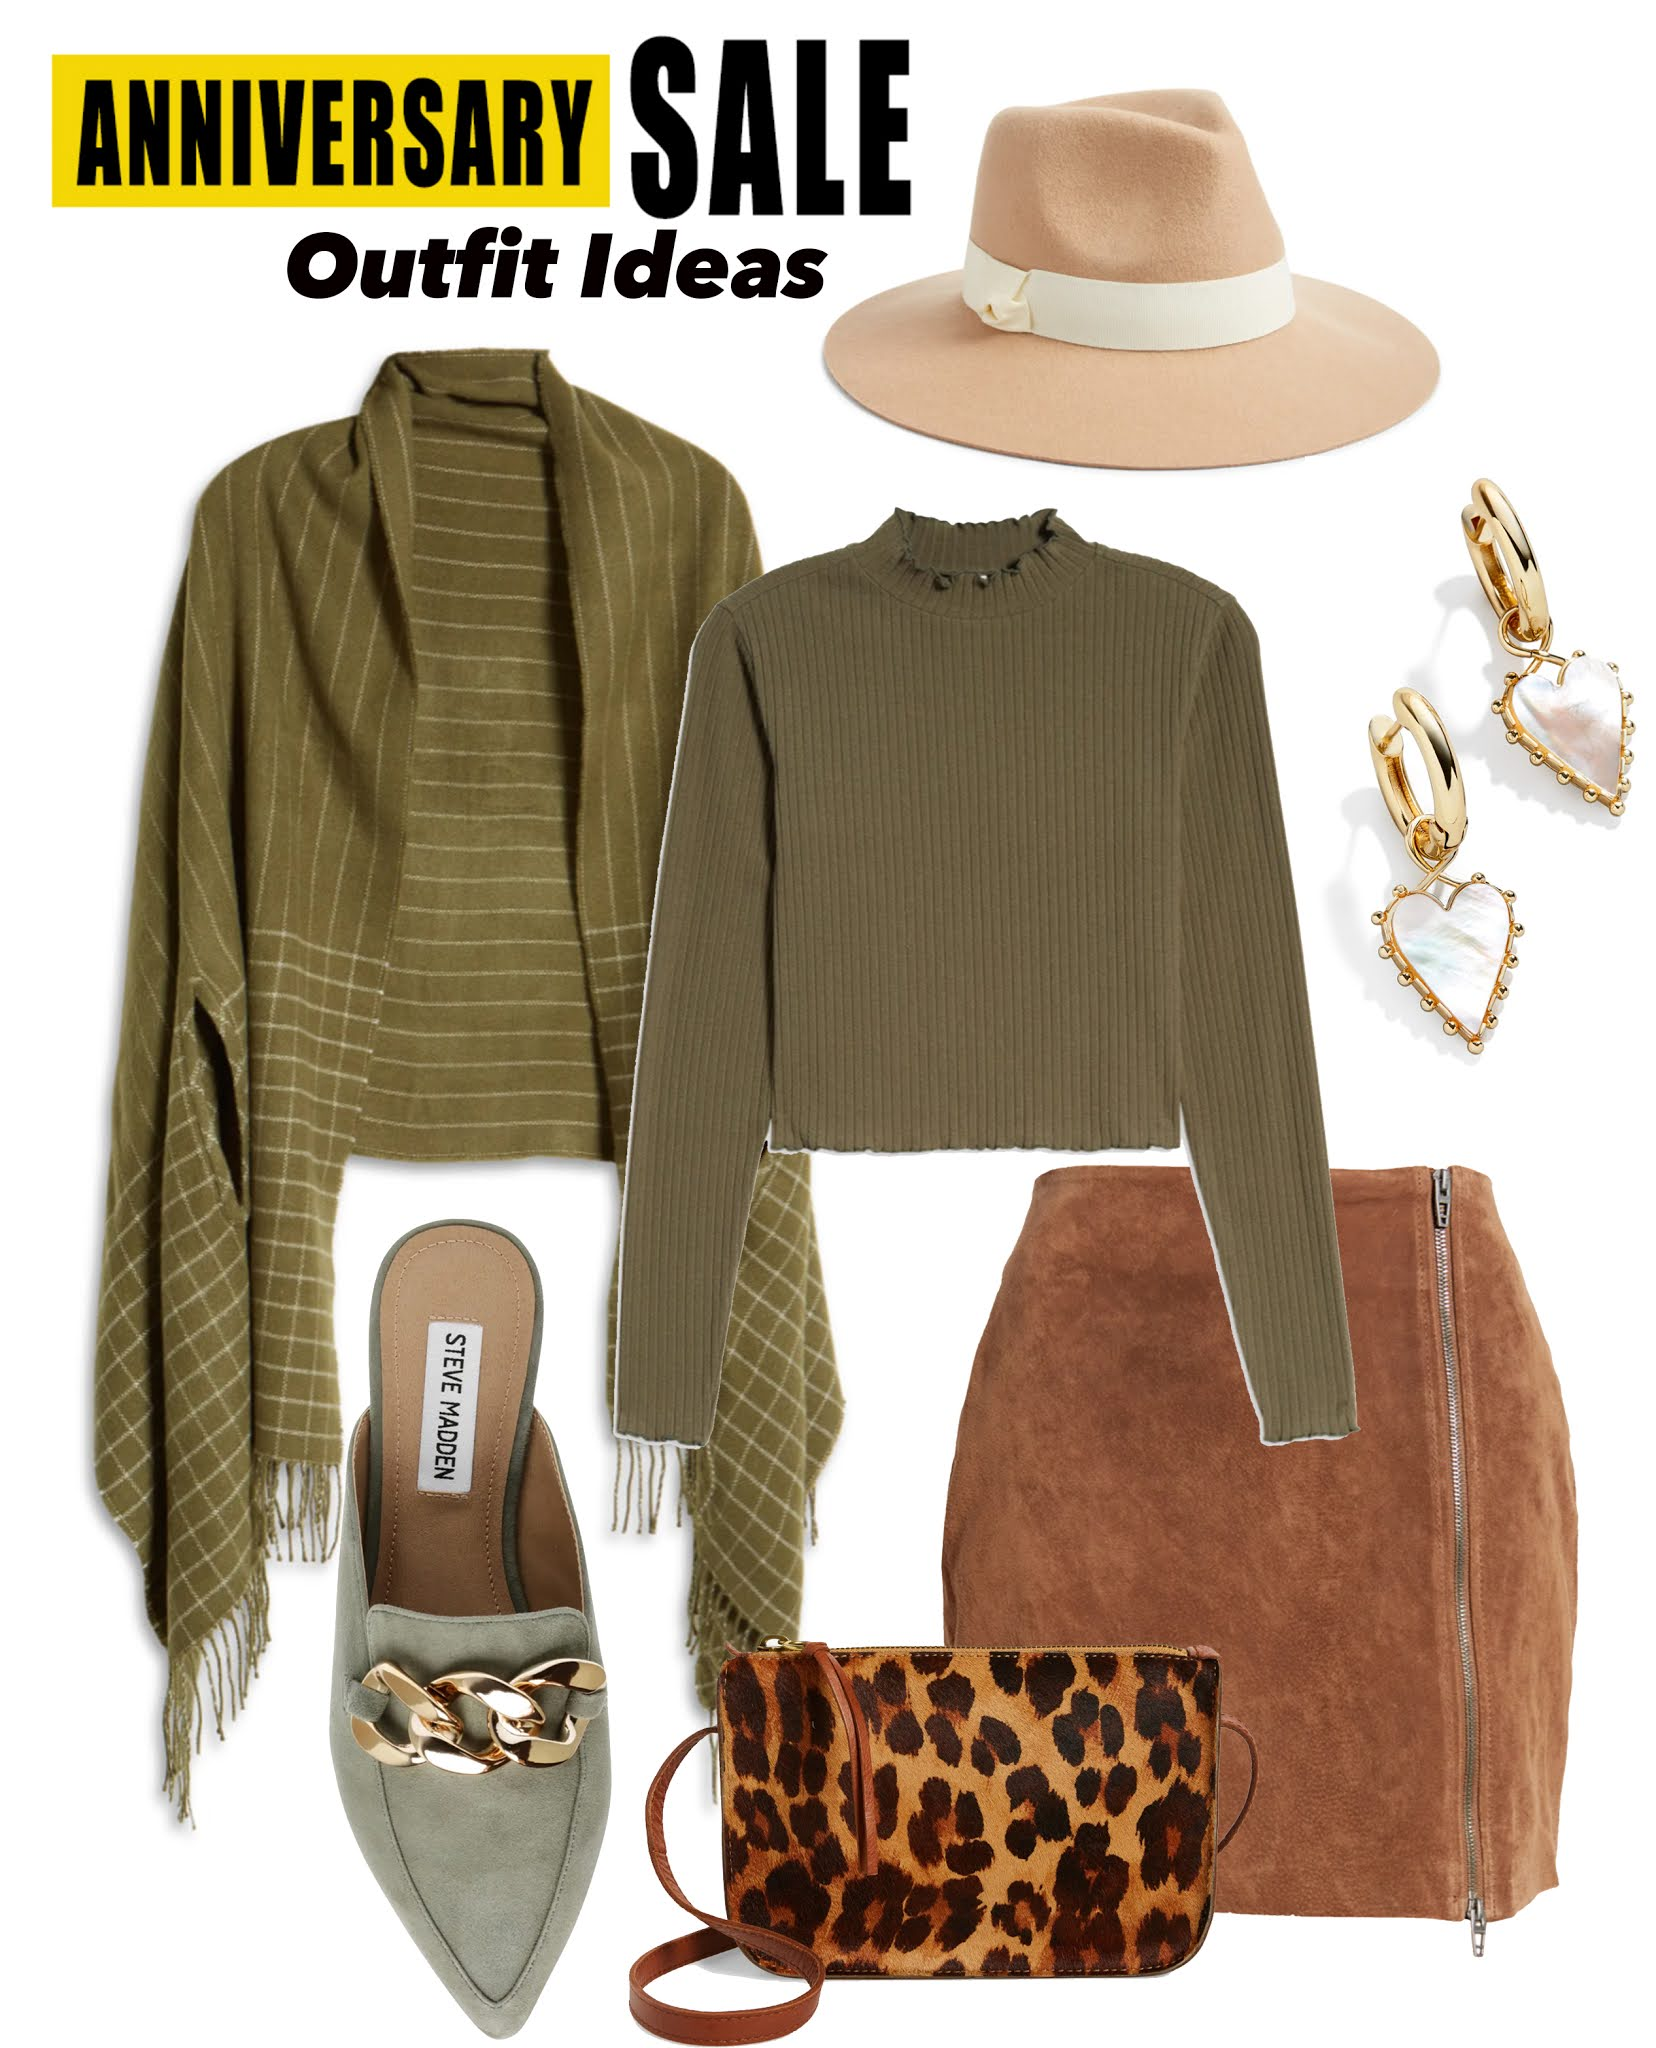 Nordstrom Anniversary Sale Outfits: Fall Outfit Inspo - Something Delightful Blog #NordstromAnniversarySale #NSale21 #NSale #FallOutfits #FallOutfitInspo